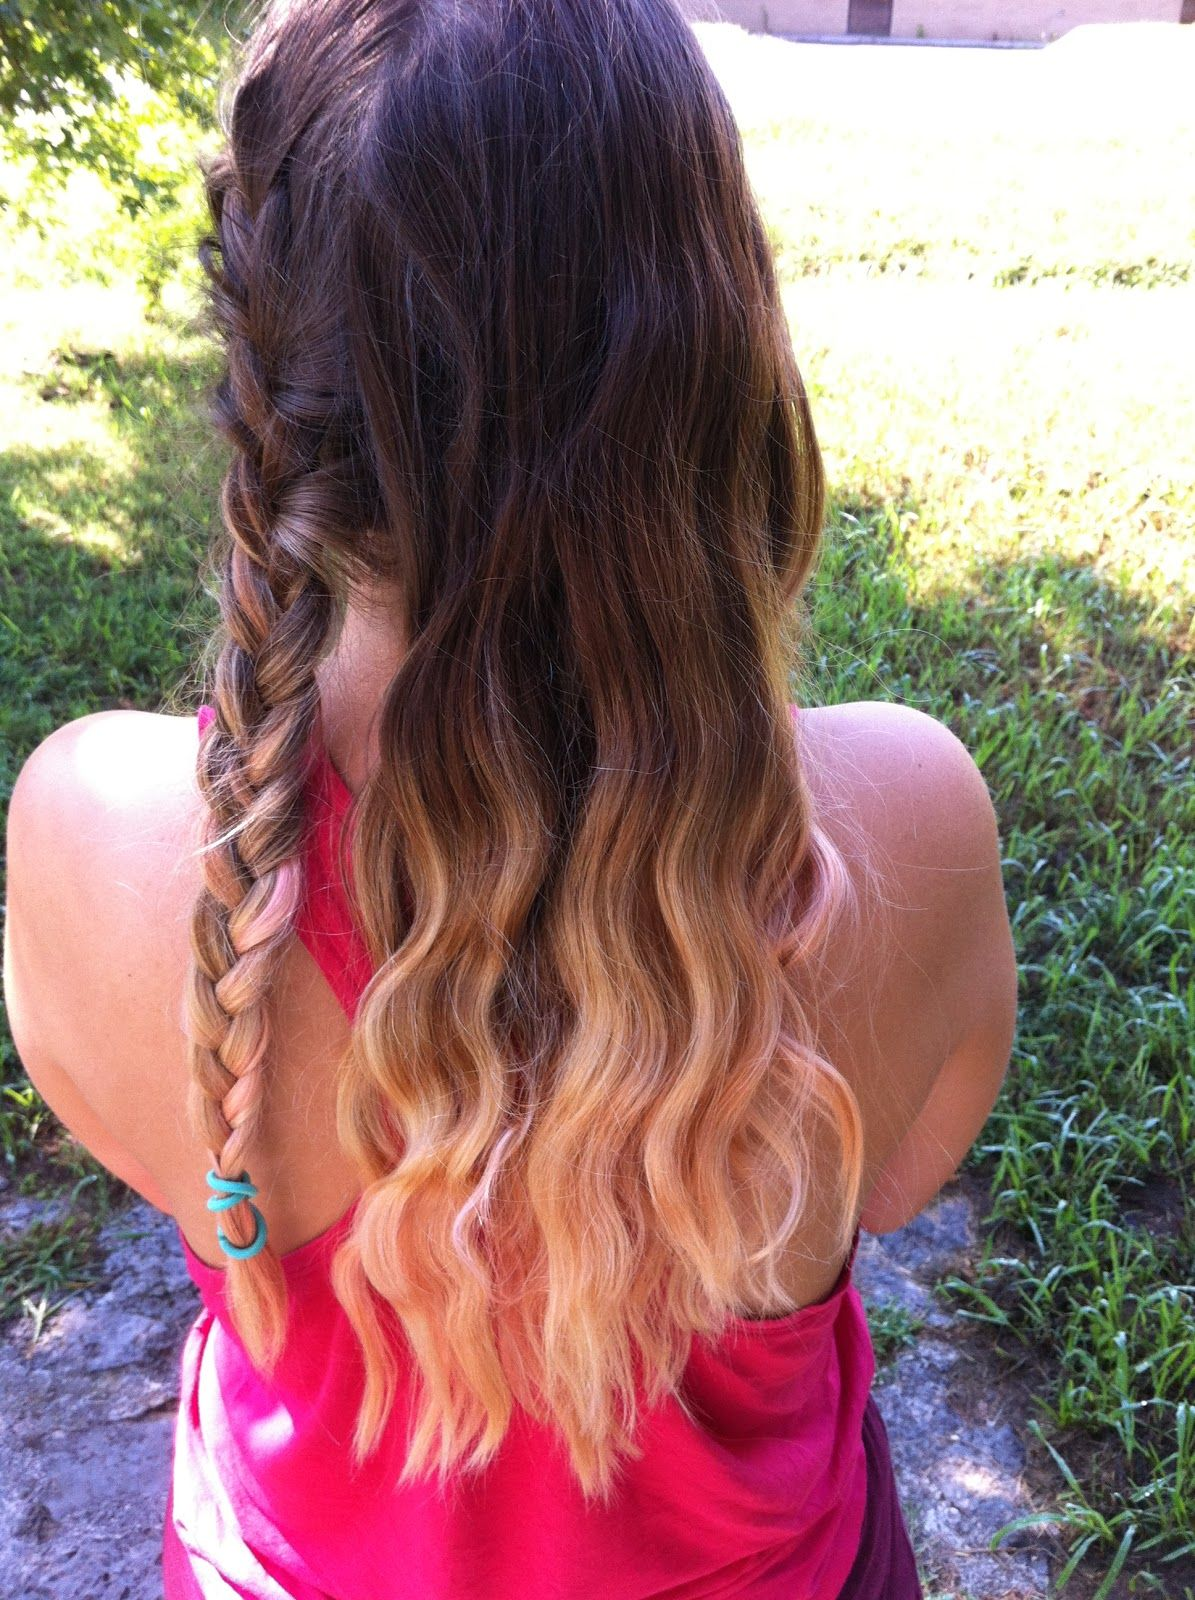 Sleep On It French Braids To Beach Waves Wavy Hair With Braid Wavy Hair Overnight French Braid Waves